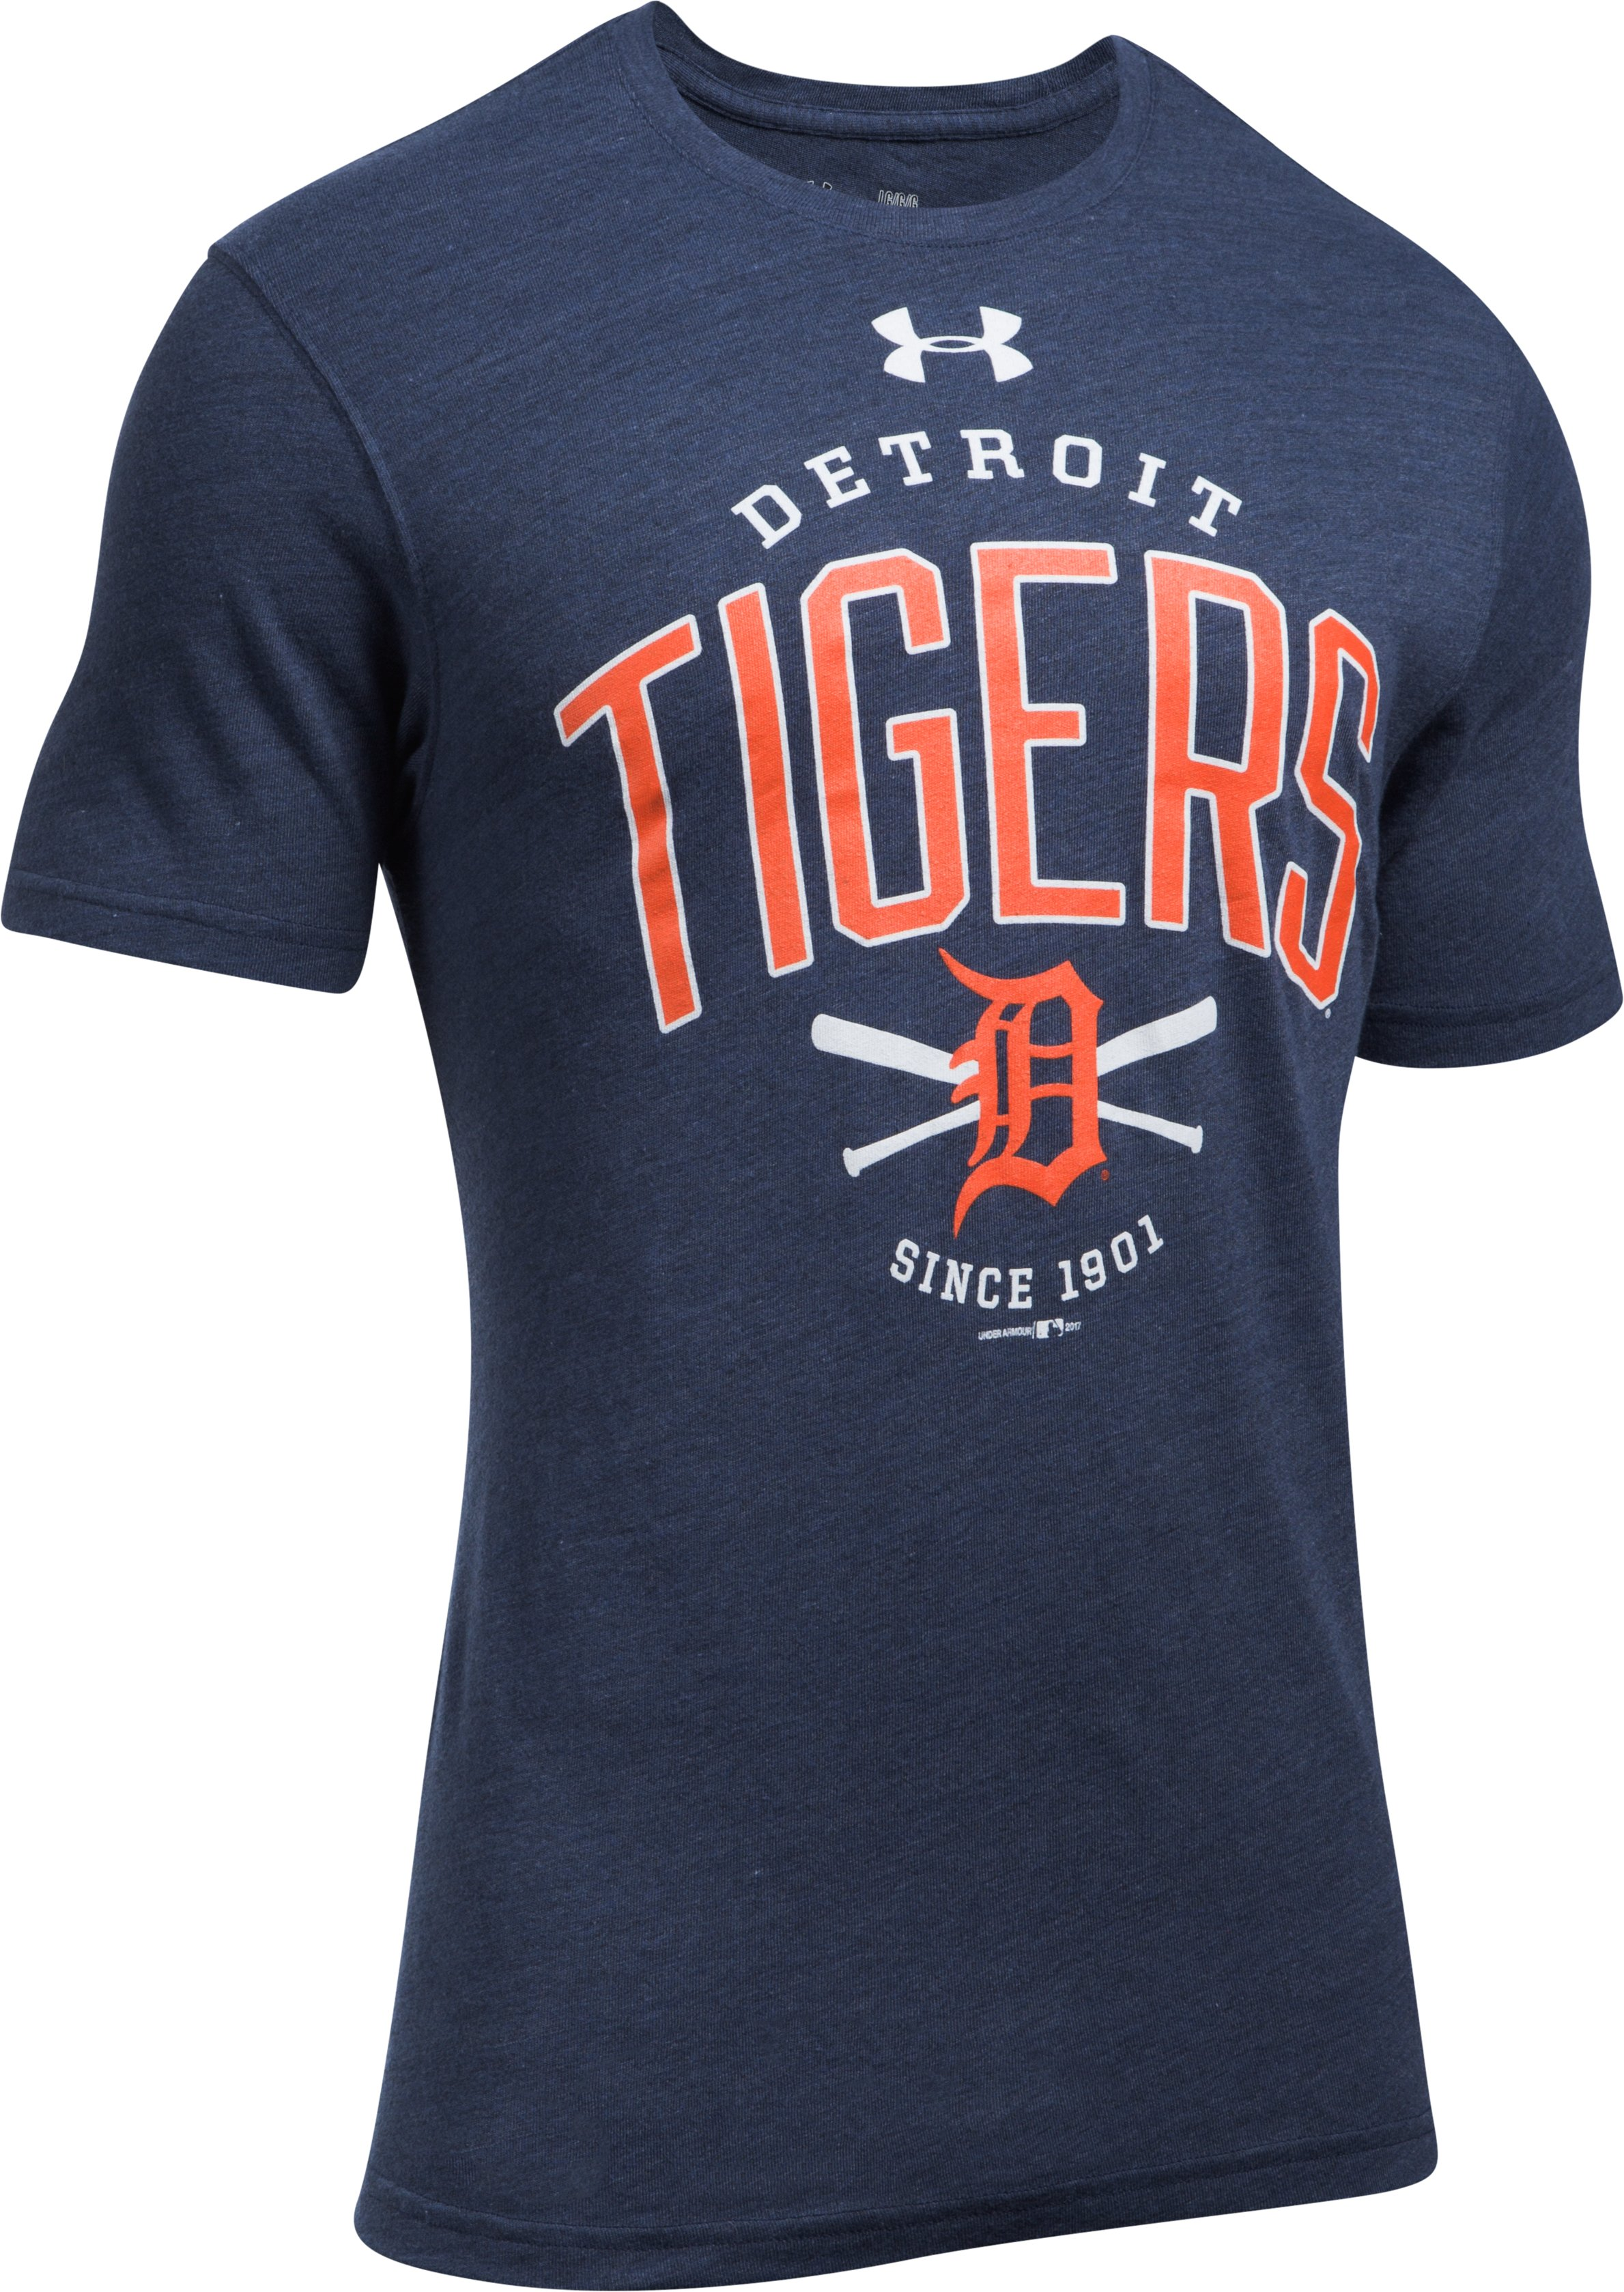 Men's Detroit Tigers Tri-Blend T-Shirt, Midnight Navy,